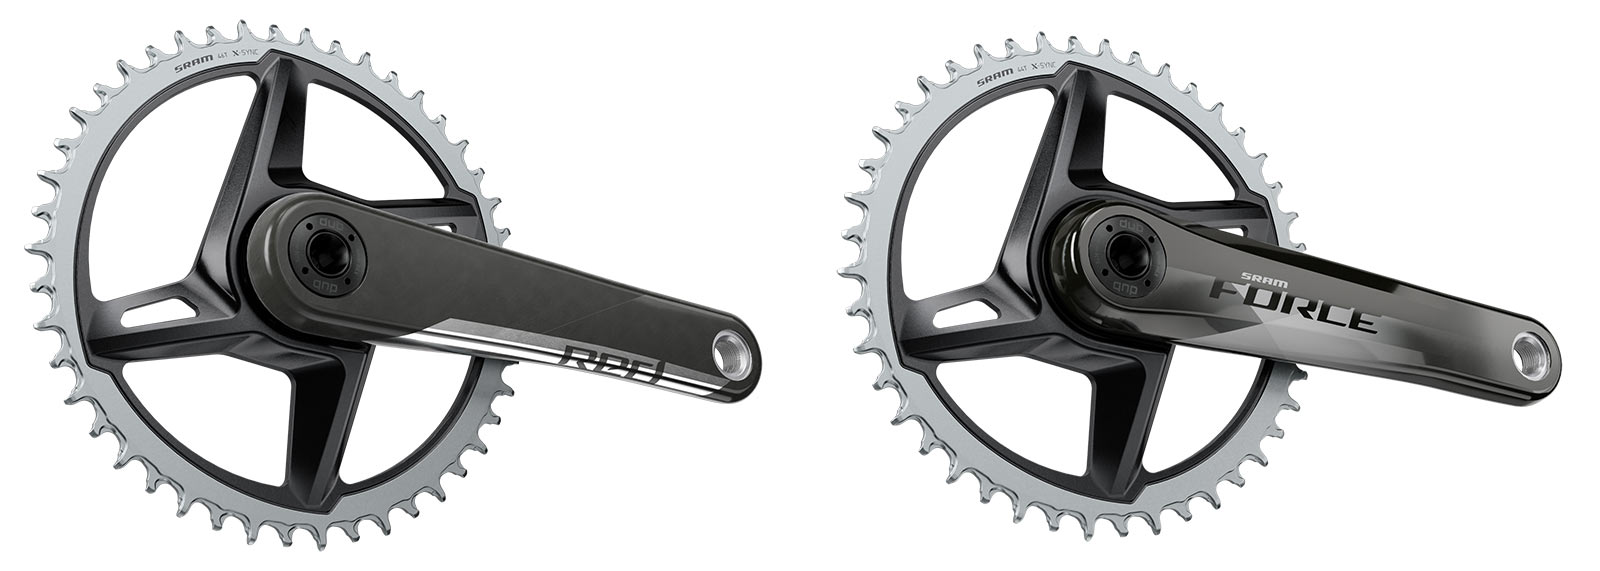 sram 1x gravel bike chainrings for red and force carbon cranksets